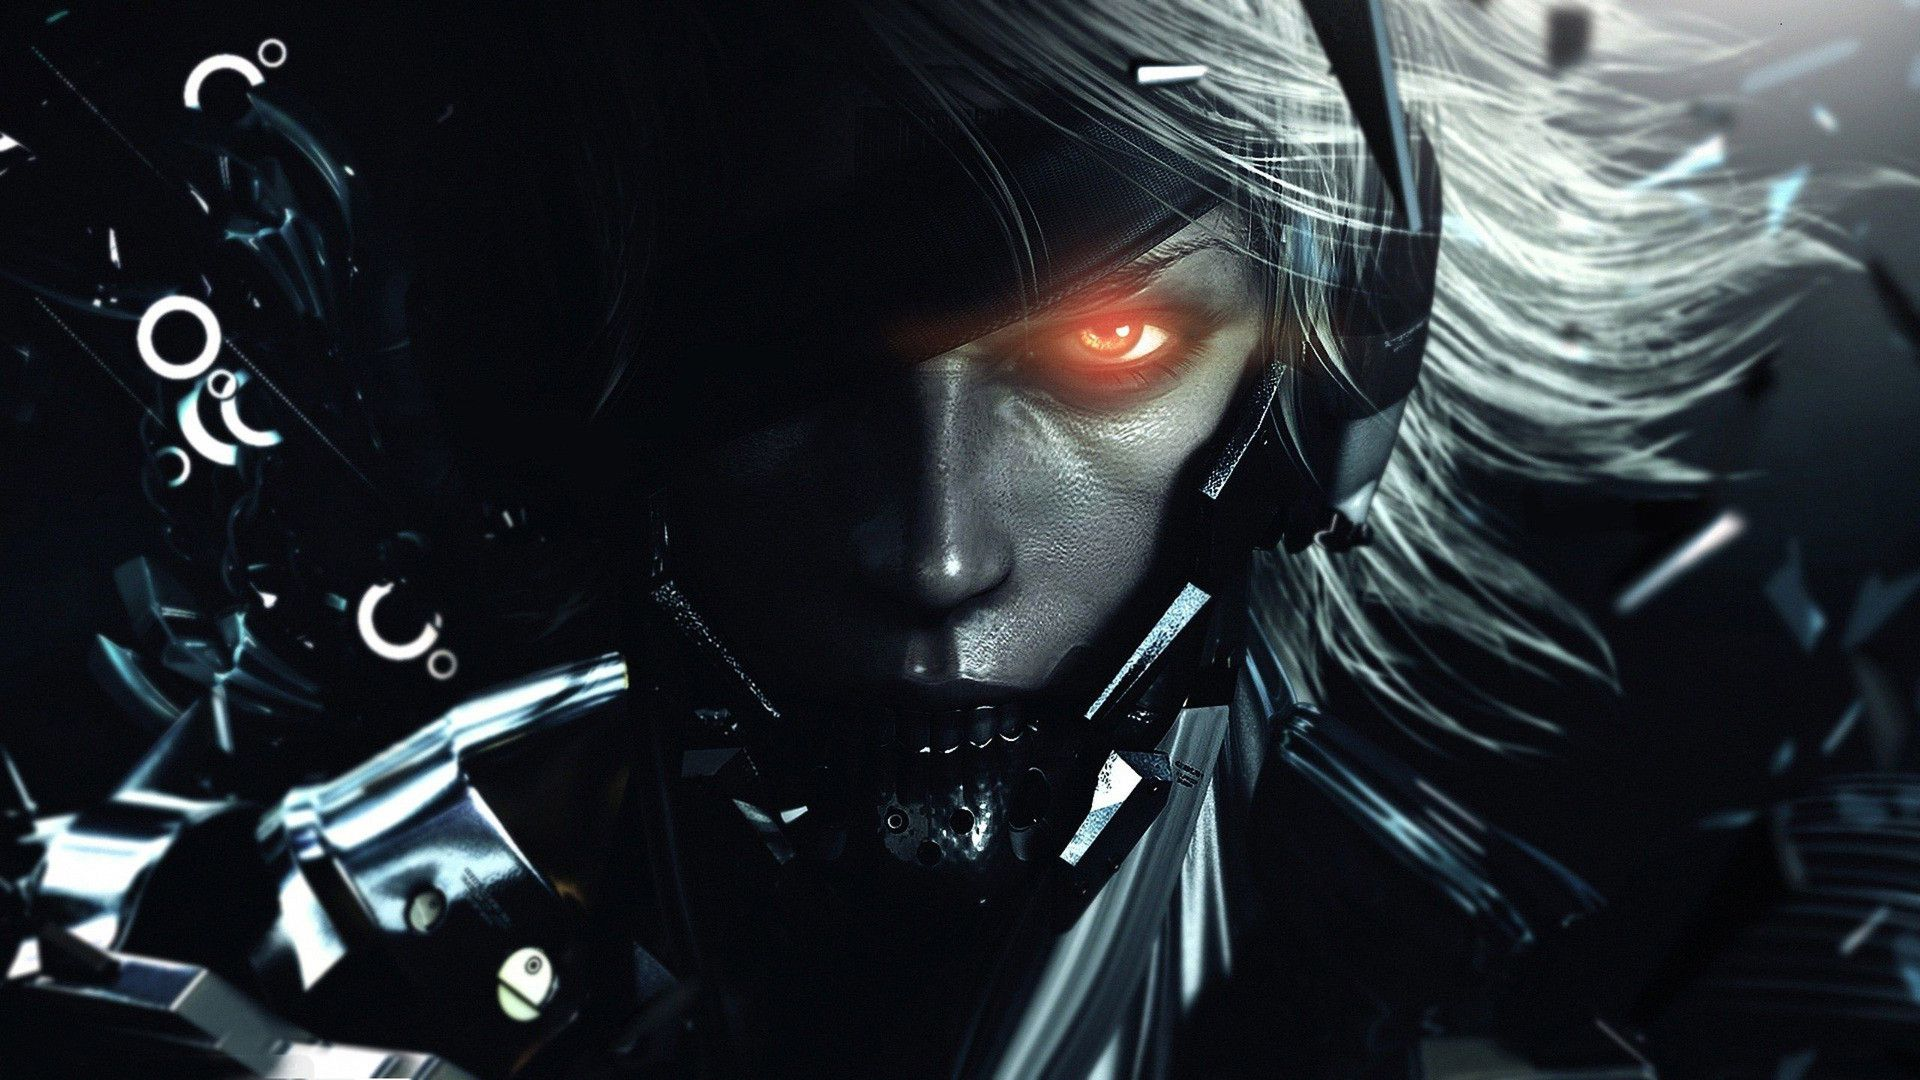 image - metal-gear-rising-jack-the-ripper-wallpaper-android